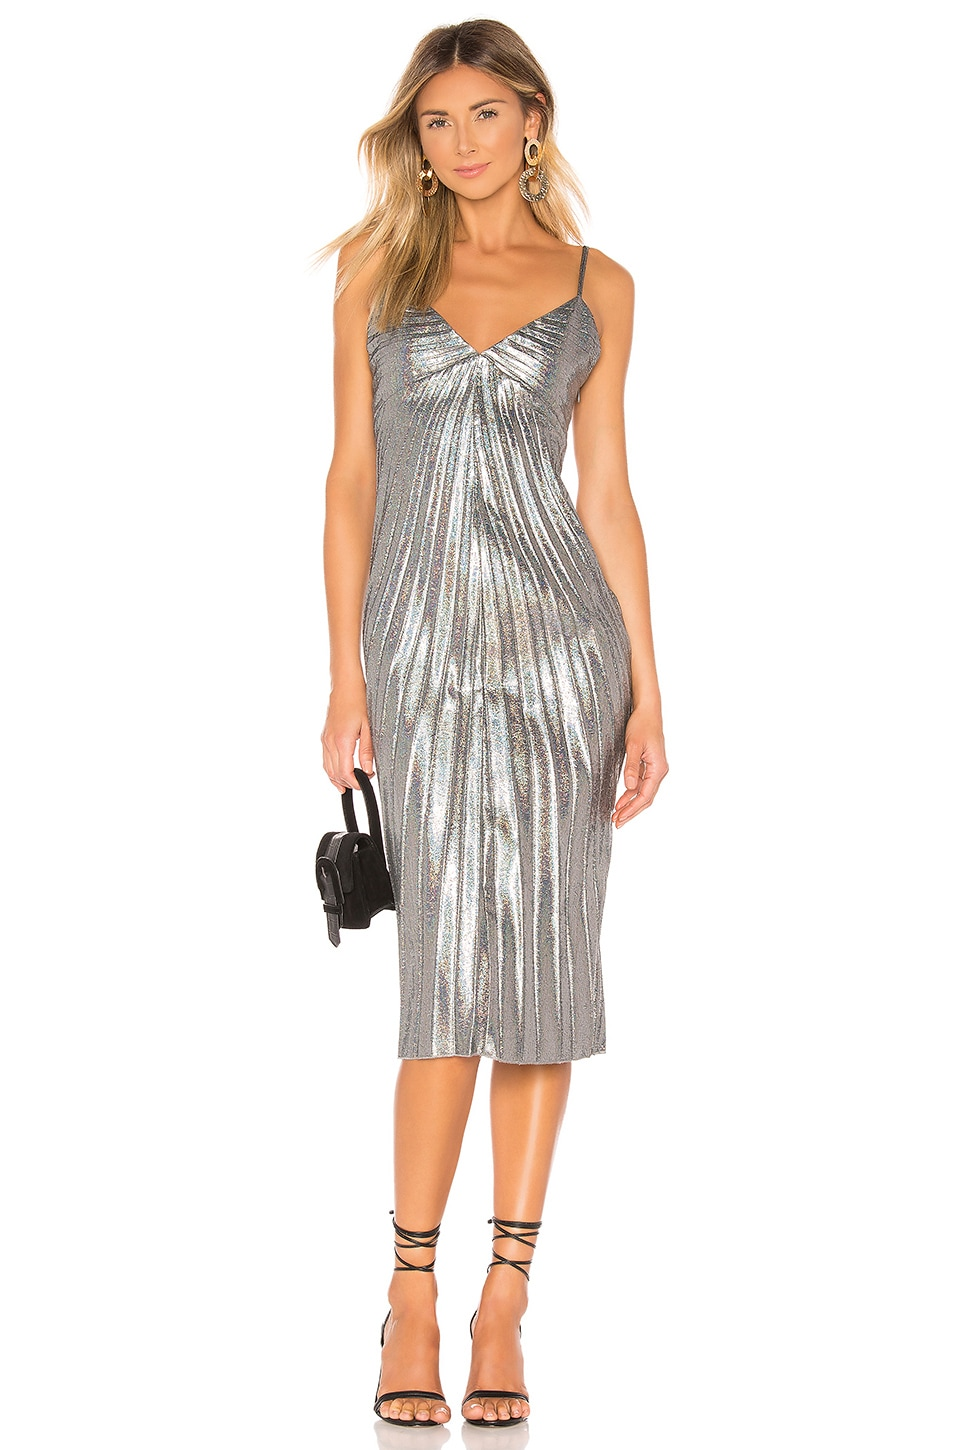 House of Harlow 1960 x REVOLVE Floriano Dress in Hologram Multi